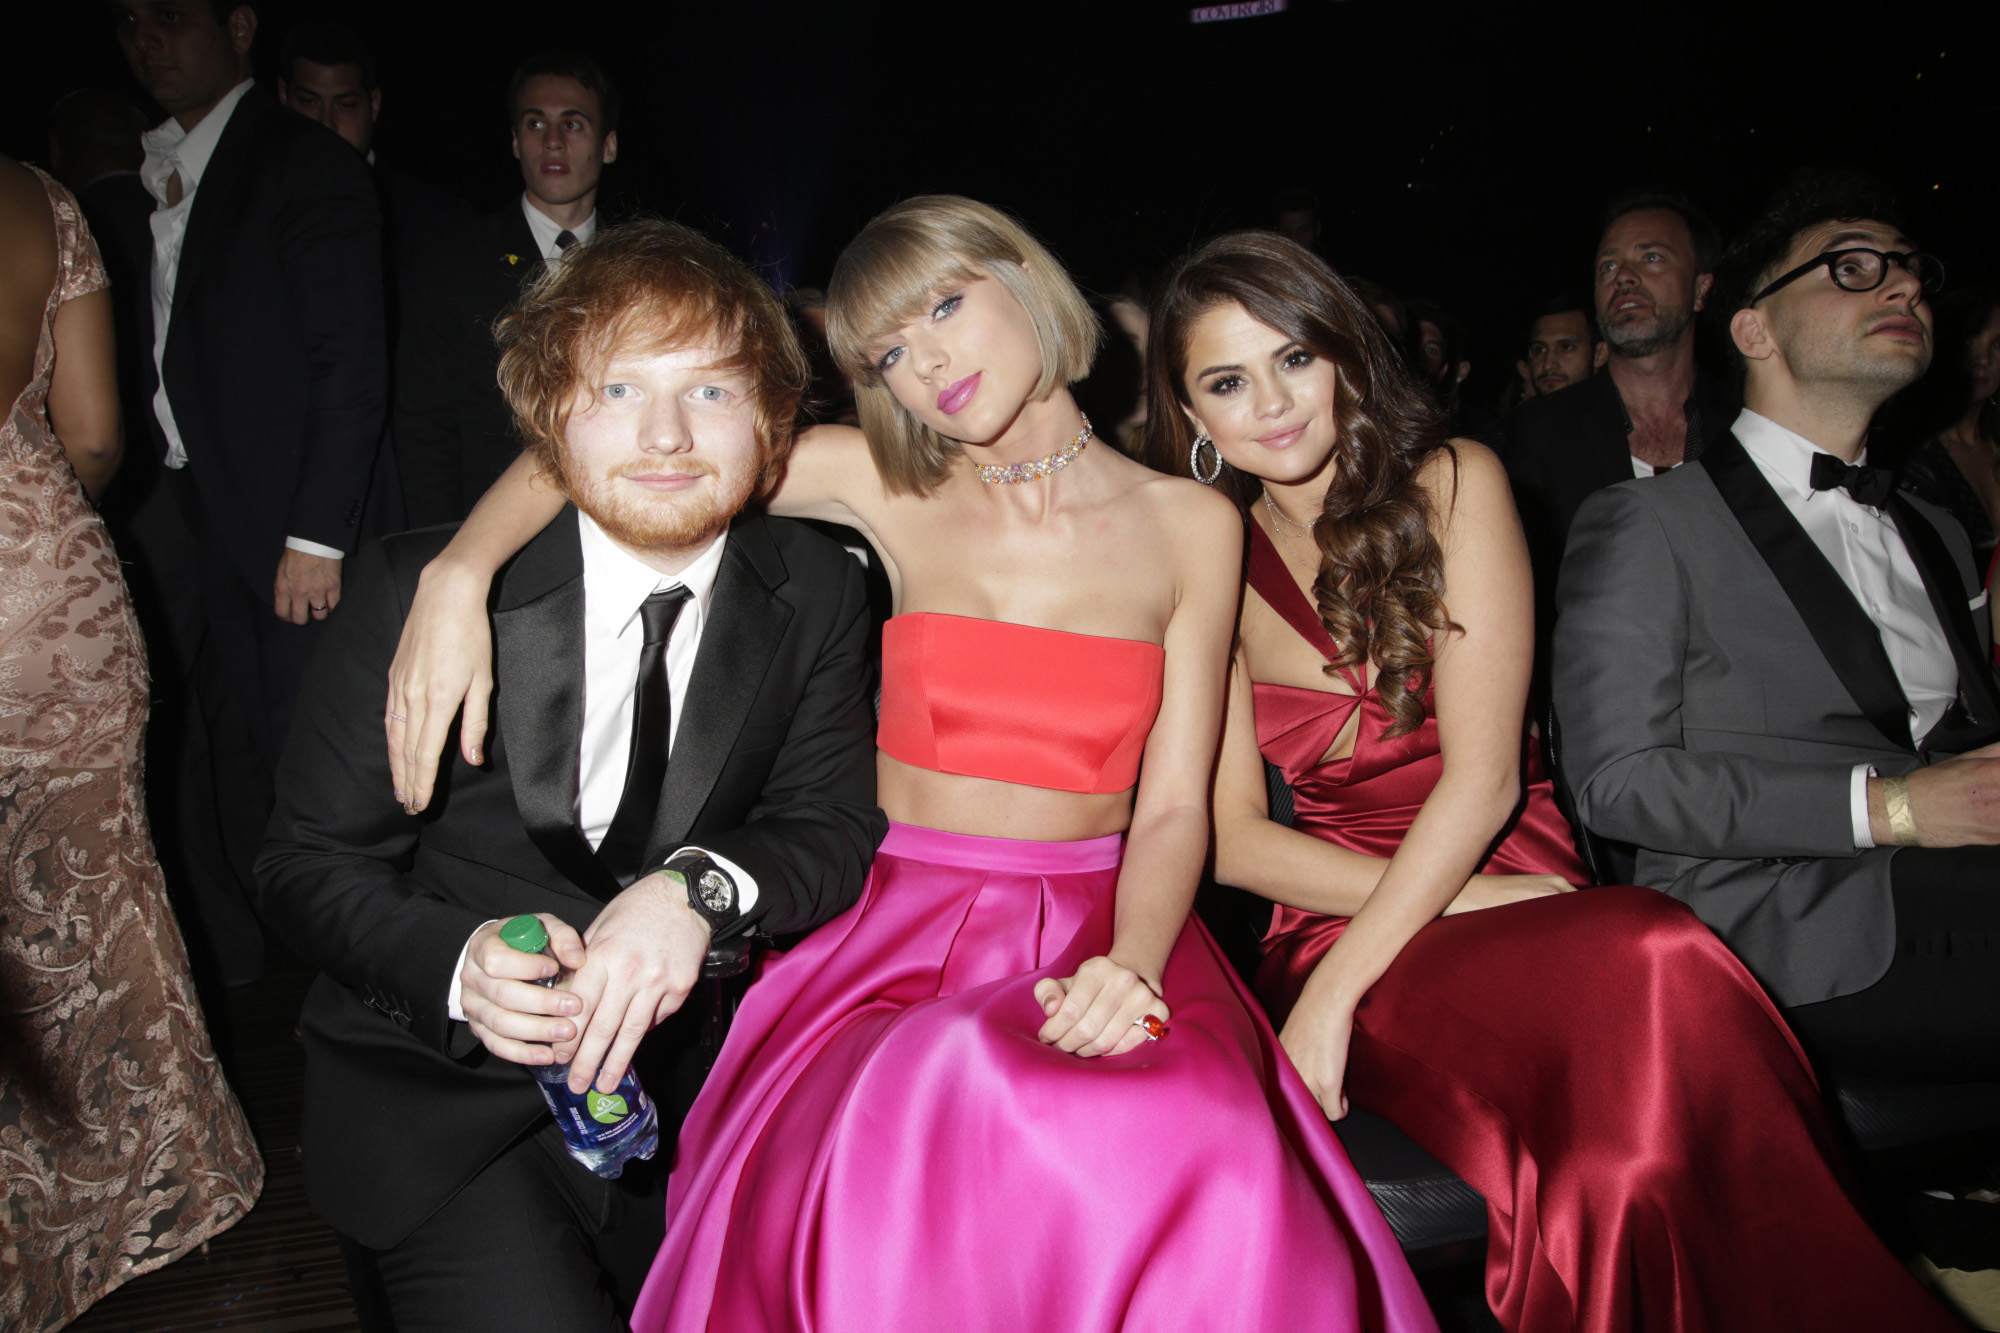 Ed Sheeran, Taylor Swift, and Selena Gomez in the audience at The 58TH ANNUAL GRAMMY AWARDS on Monday, Feb. 15, 2016 (8:00-11:30 PM, live ET) at STAPLES Center in Los Angeles and broadcast on the CBS Television Network. (Photo by Francis Specker/CBS via Getty Images)